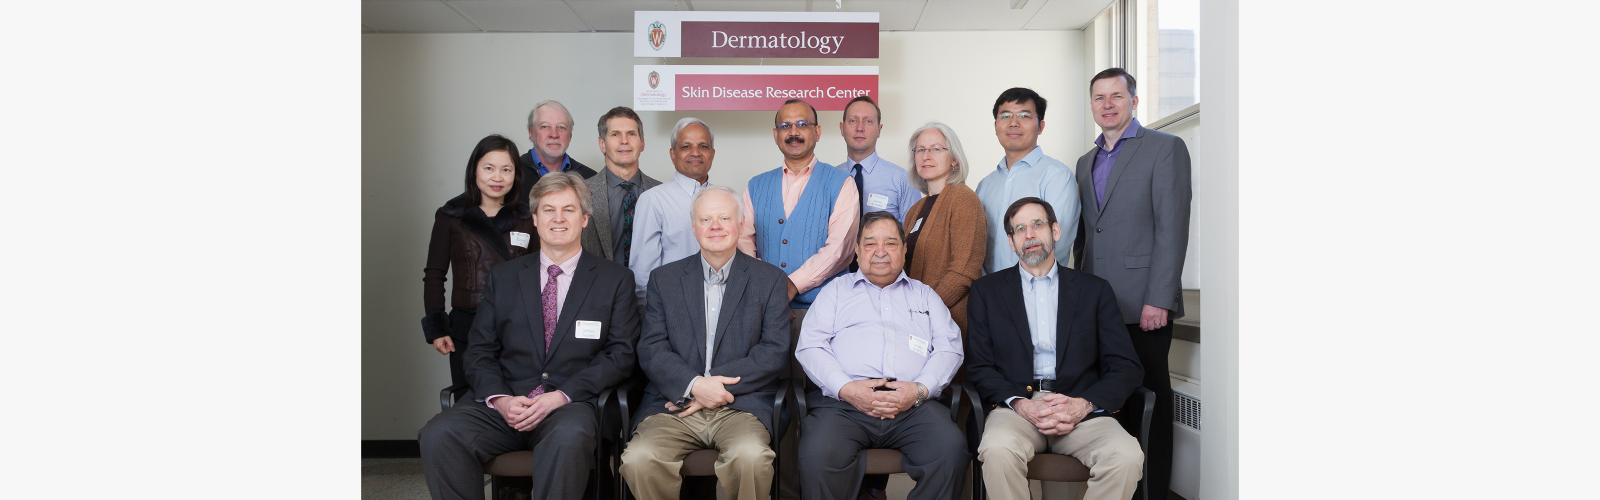 Group photo of the UW core directors and Executive Advisory Board of the UW Skin Disease Research Center. Four men are seated at front, with nine men and women standing behind them.